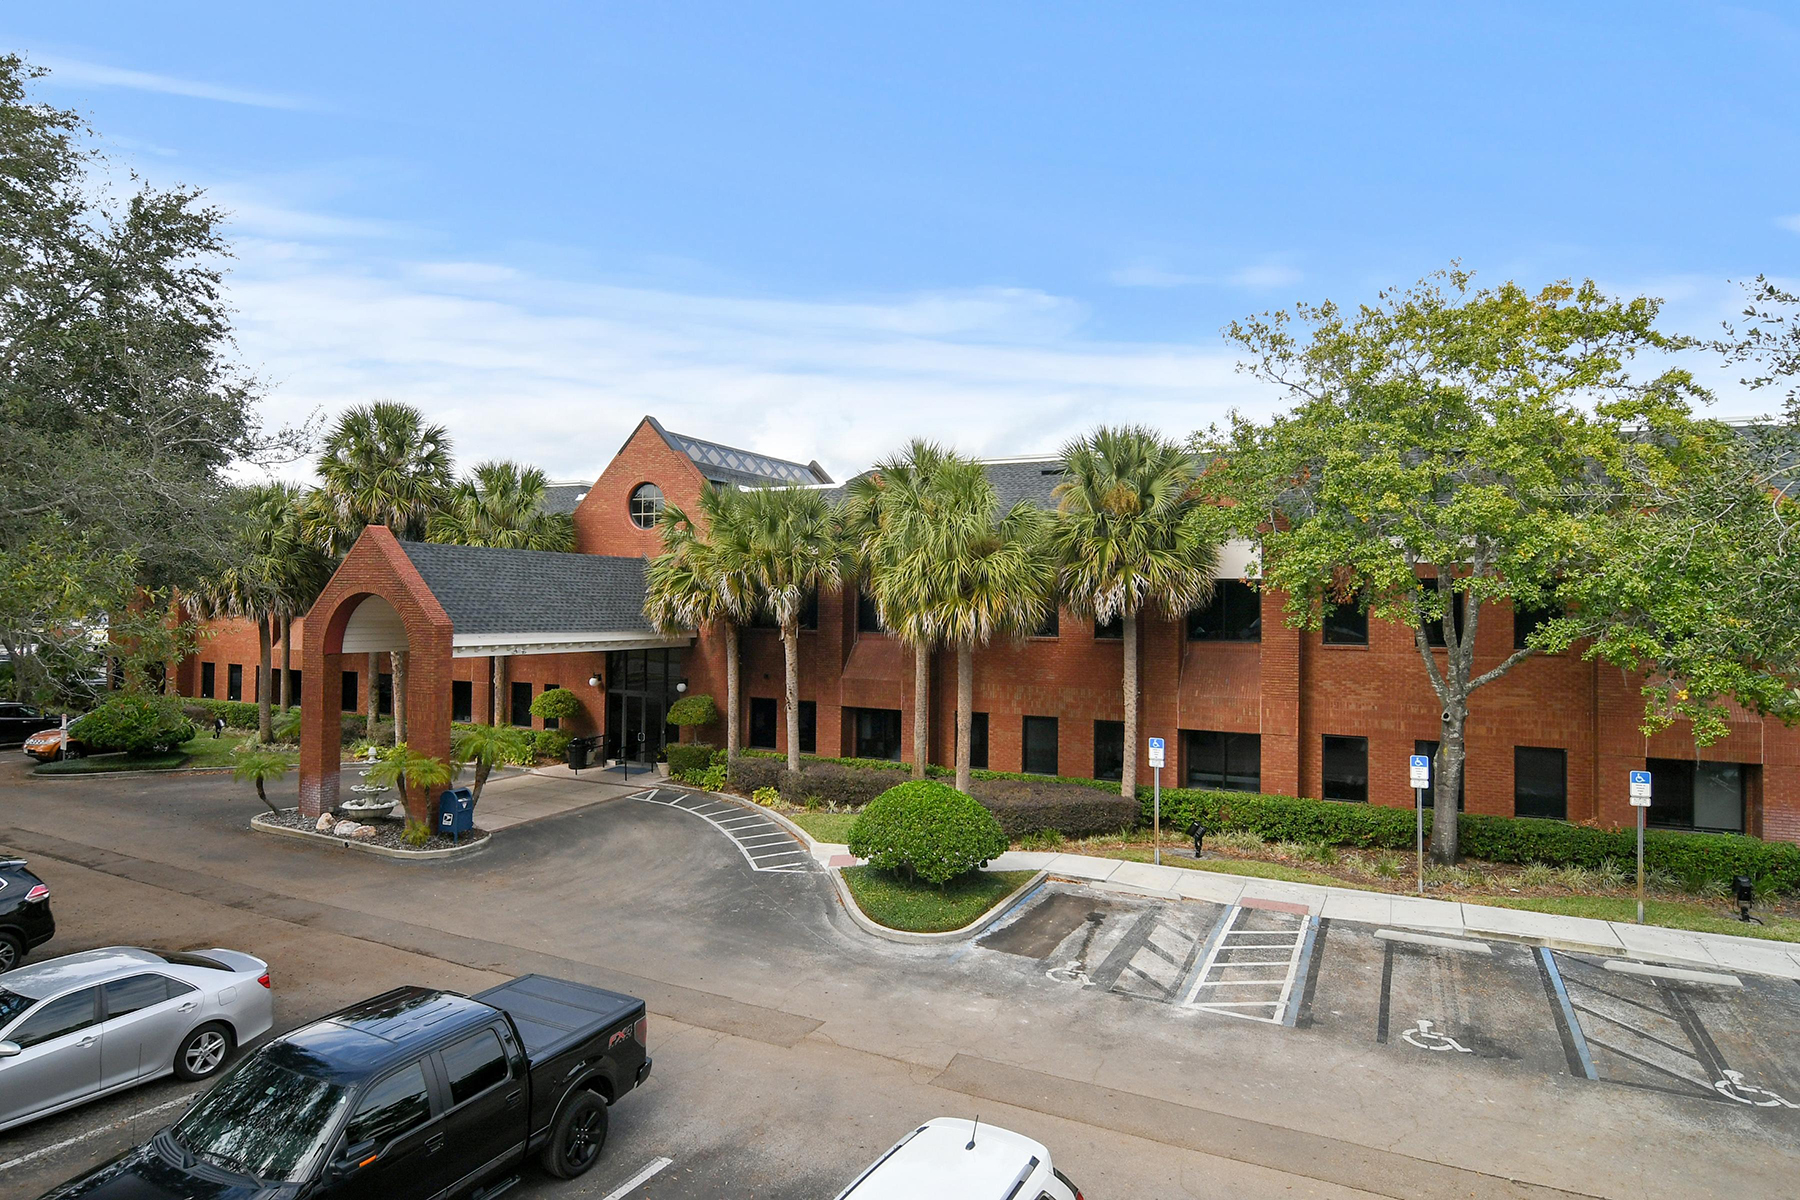 Commercial for Sale at LAKE MARY 2500 W Lake Mary Blvd, Lake Mary, Florida 32746 United States